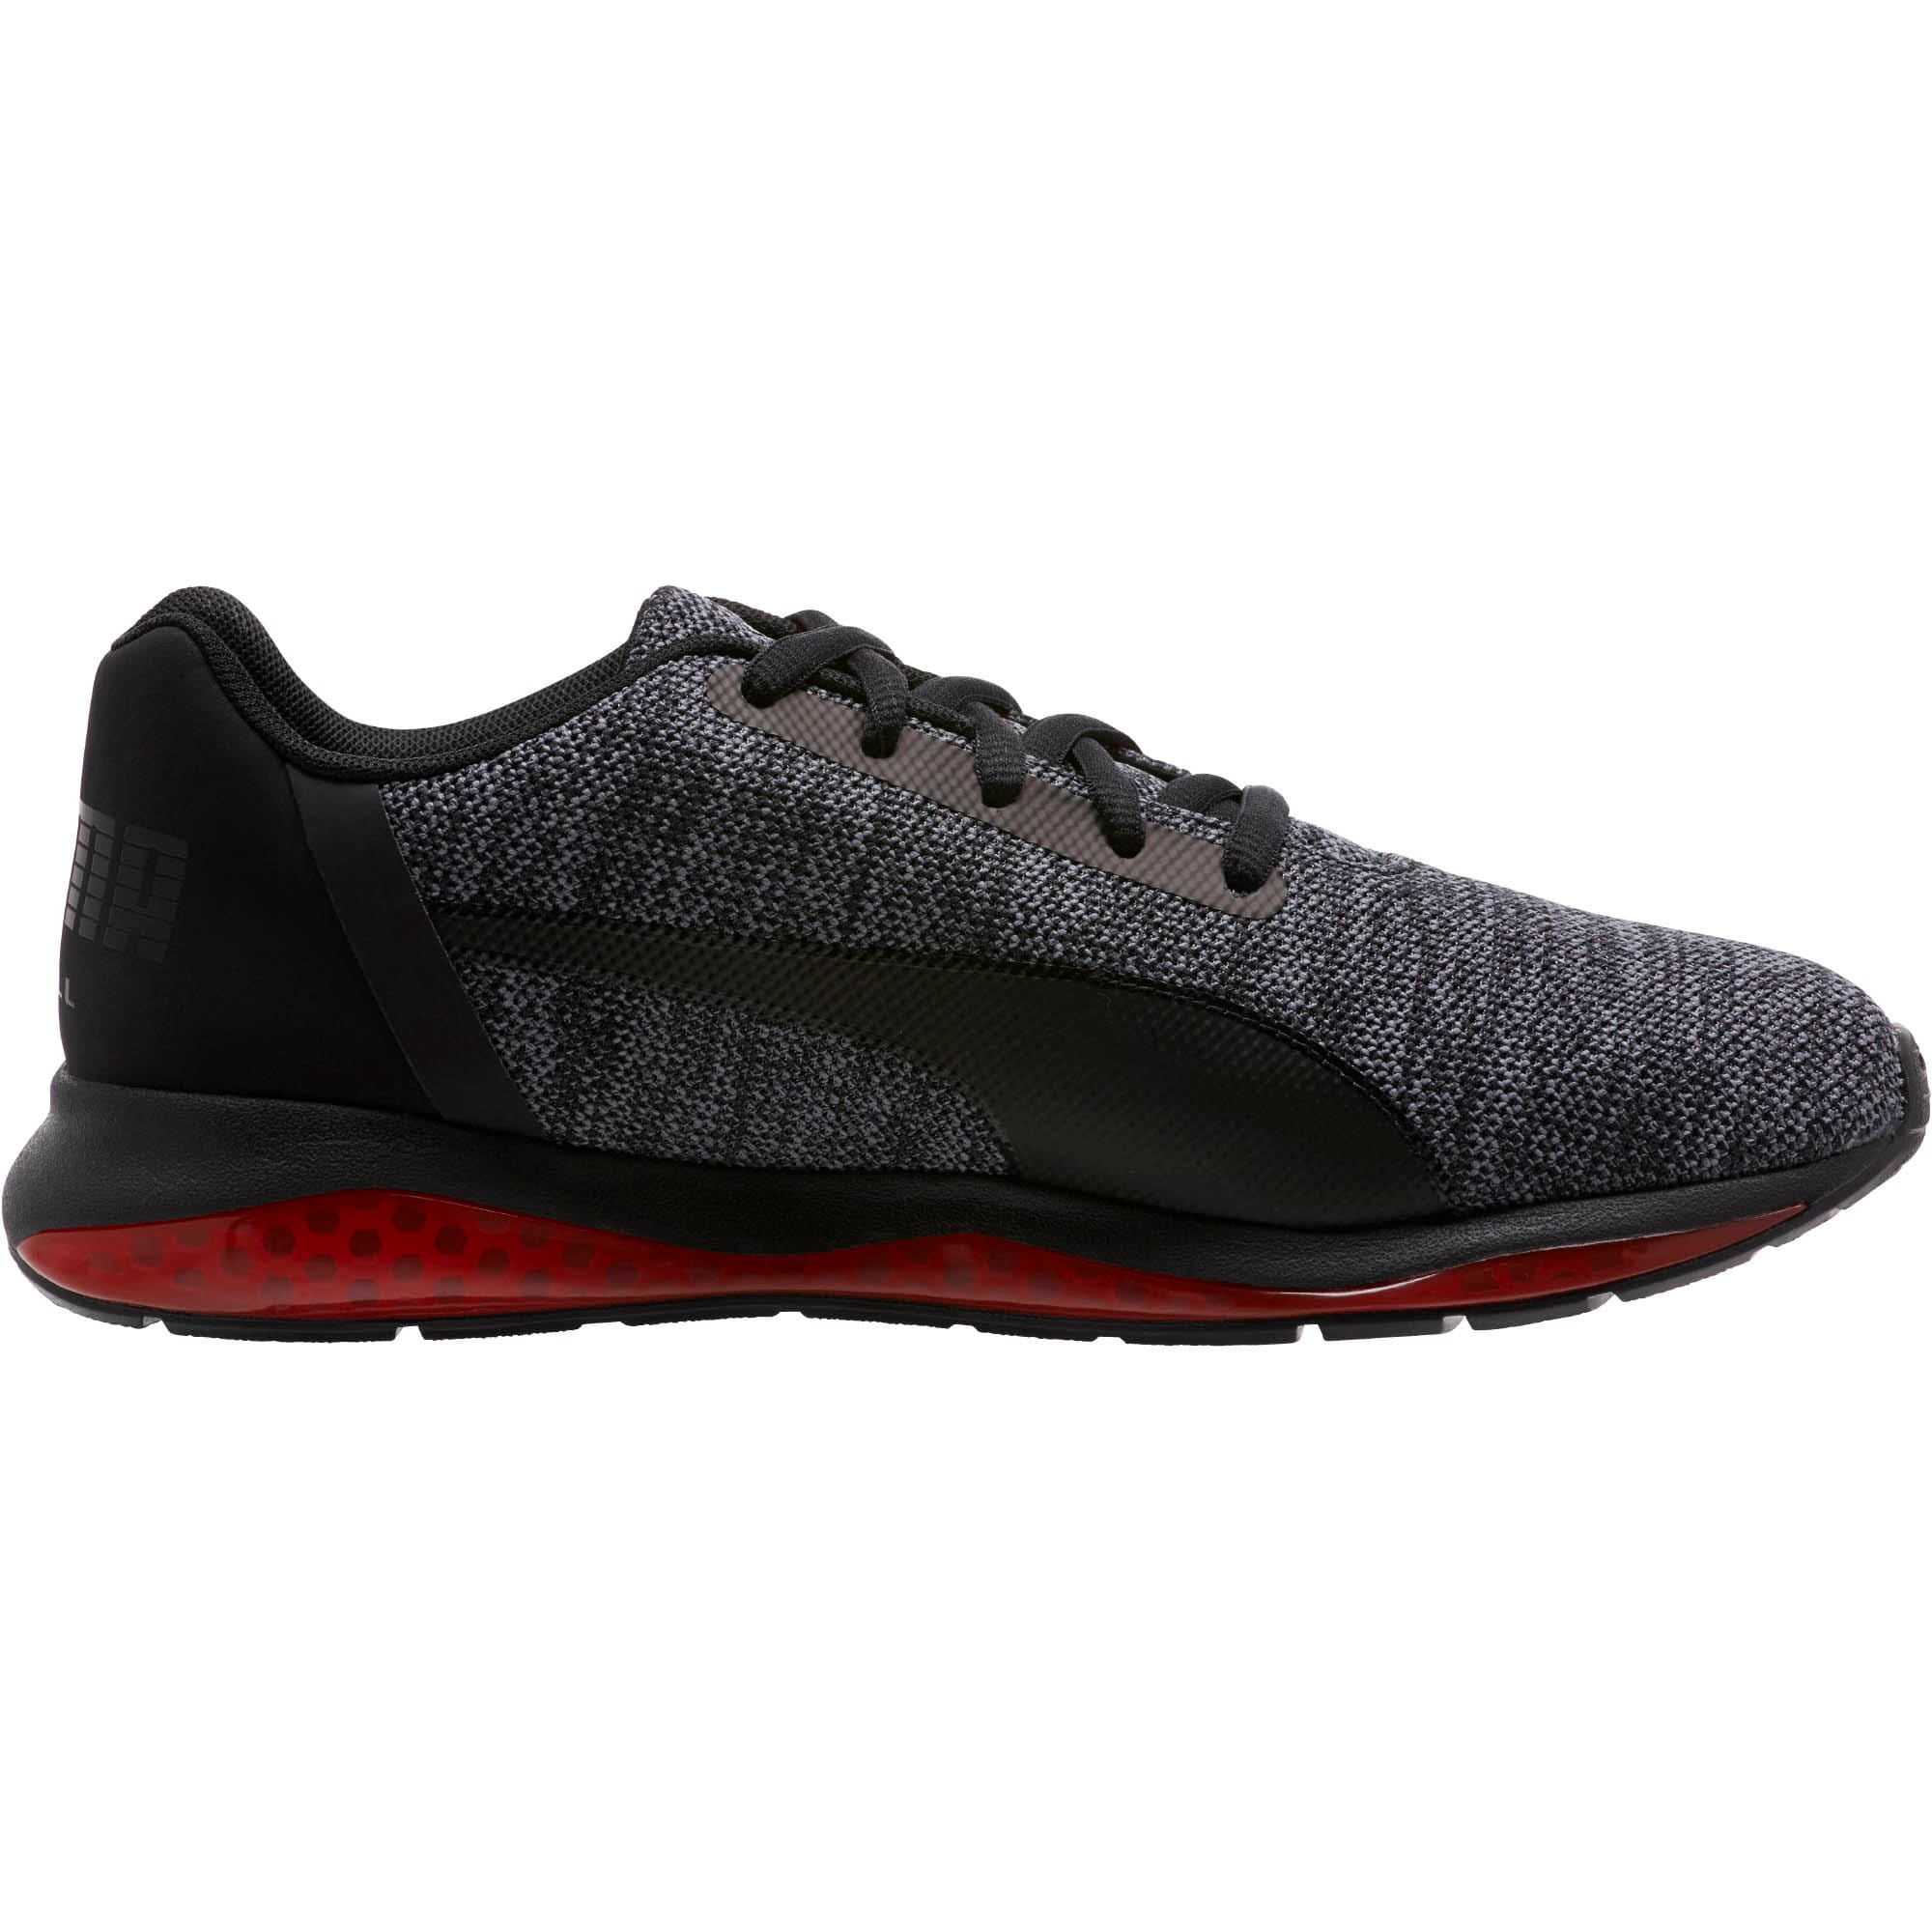 Thumbnail 5 of CELL Ultimate Knit Training Shoes, Pma Blk-QUIET SHDE-Rbbon Red, medium